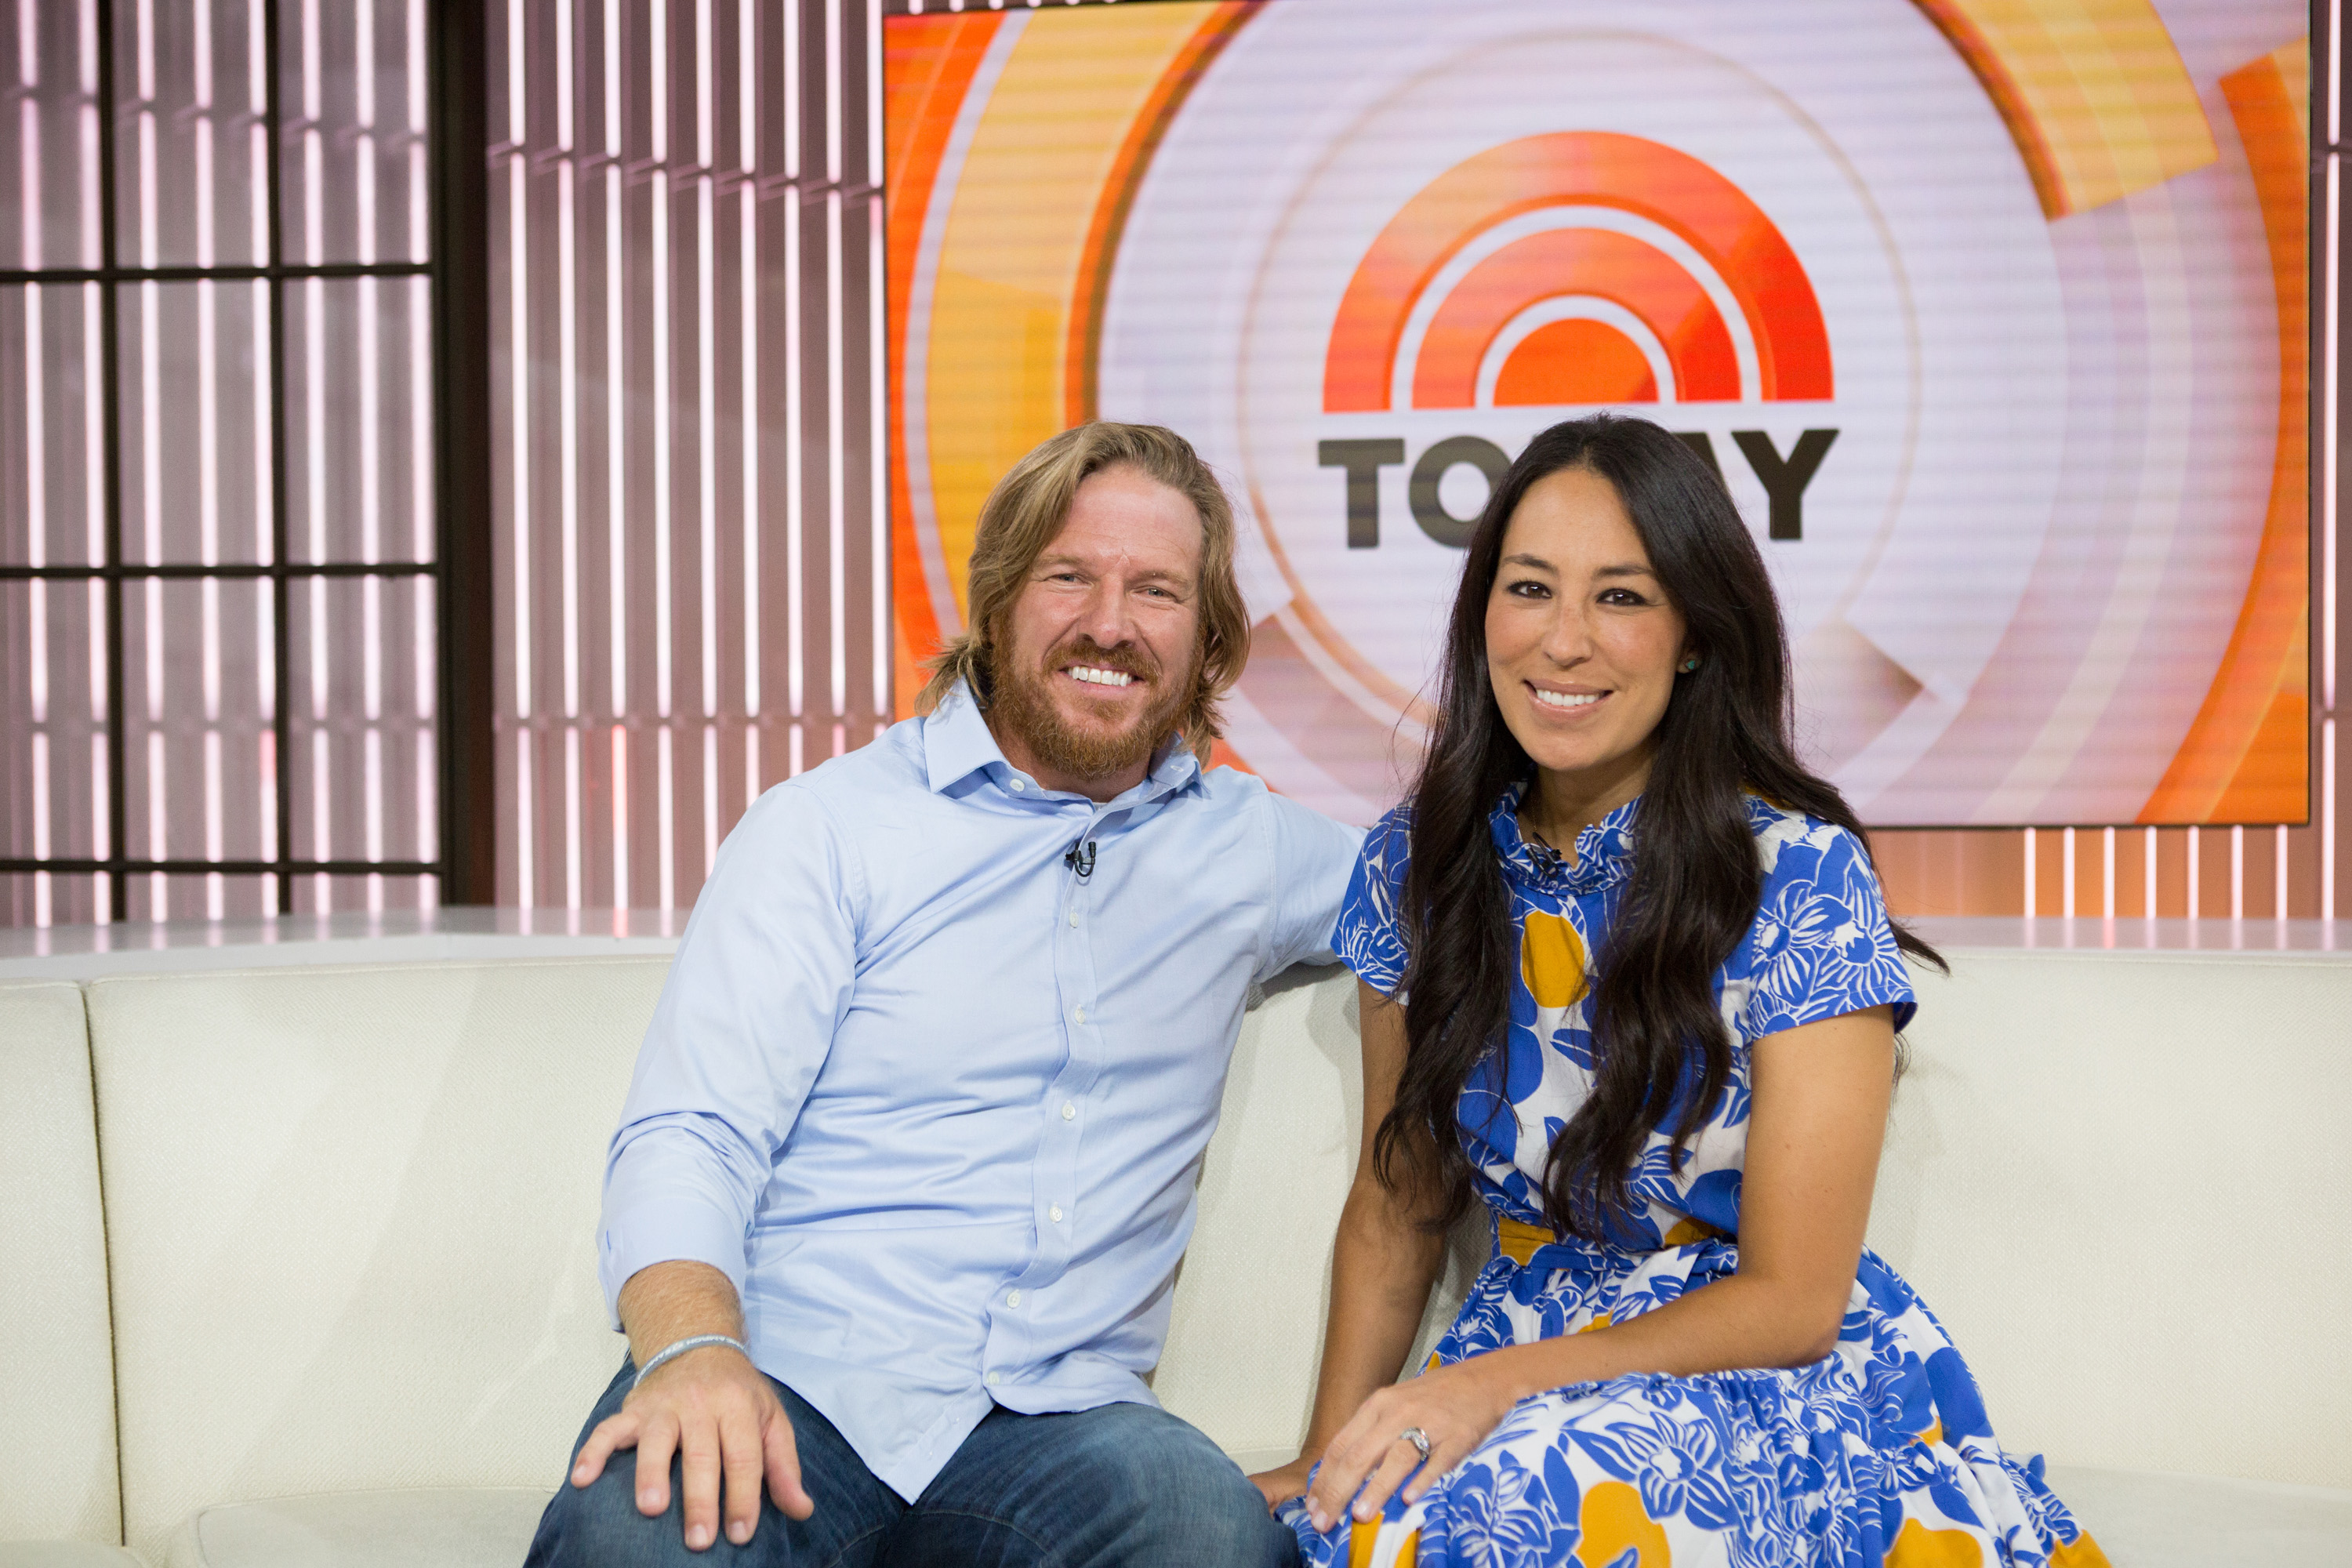 Fixer Upper Stars Chip And Joanna Gaines Face Backlash From Target Deal